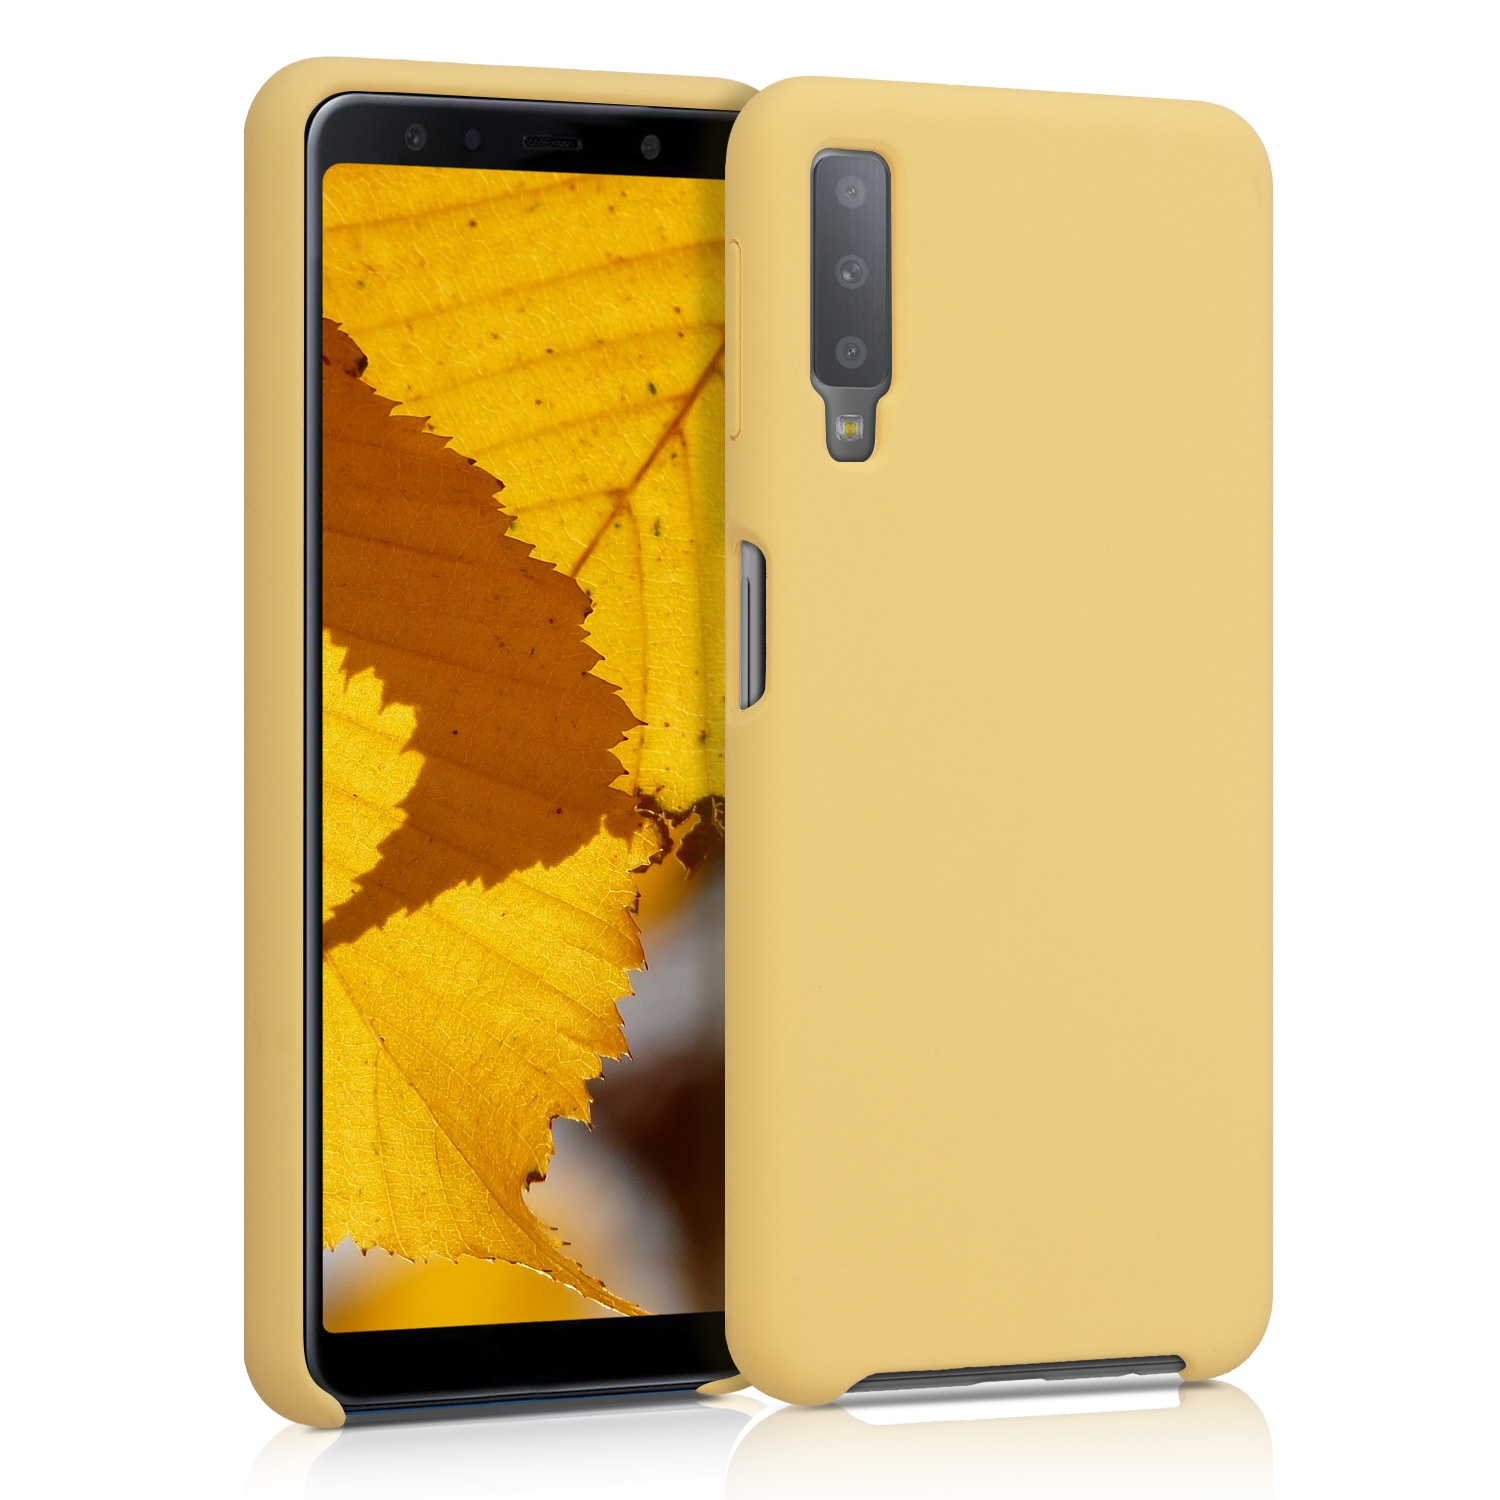 KW Θήκη Σιλικόνης Samsung Galaxy A7 2018 - Soft Flexible Rubber Protective Cover - Pastel Yellow Matte (47730.119)